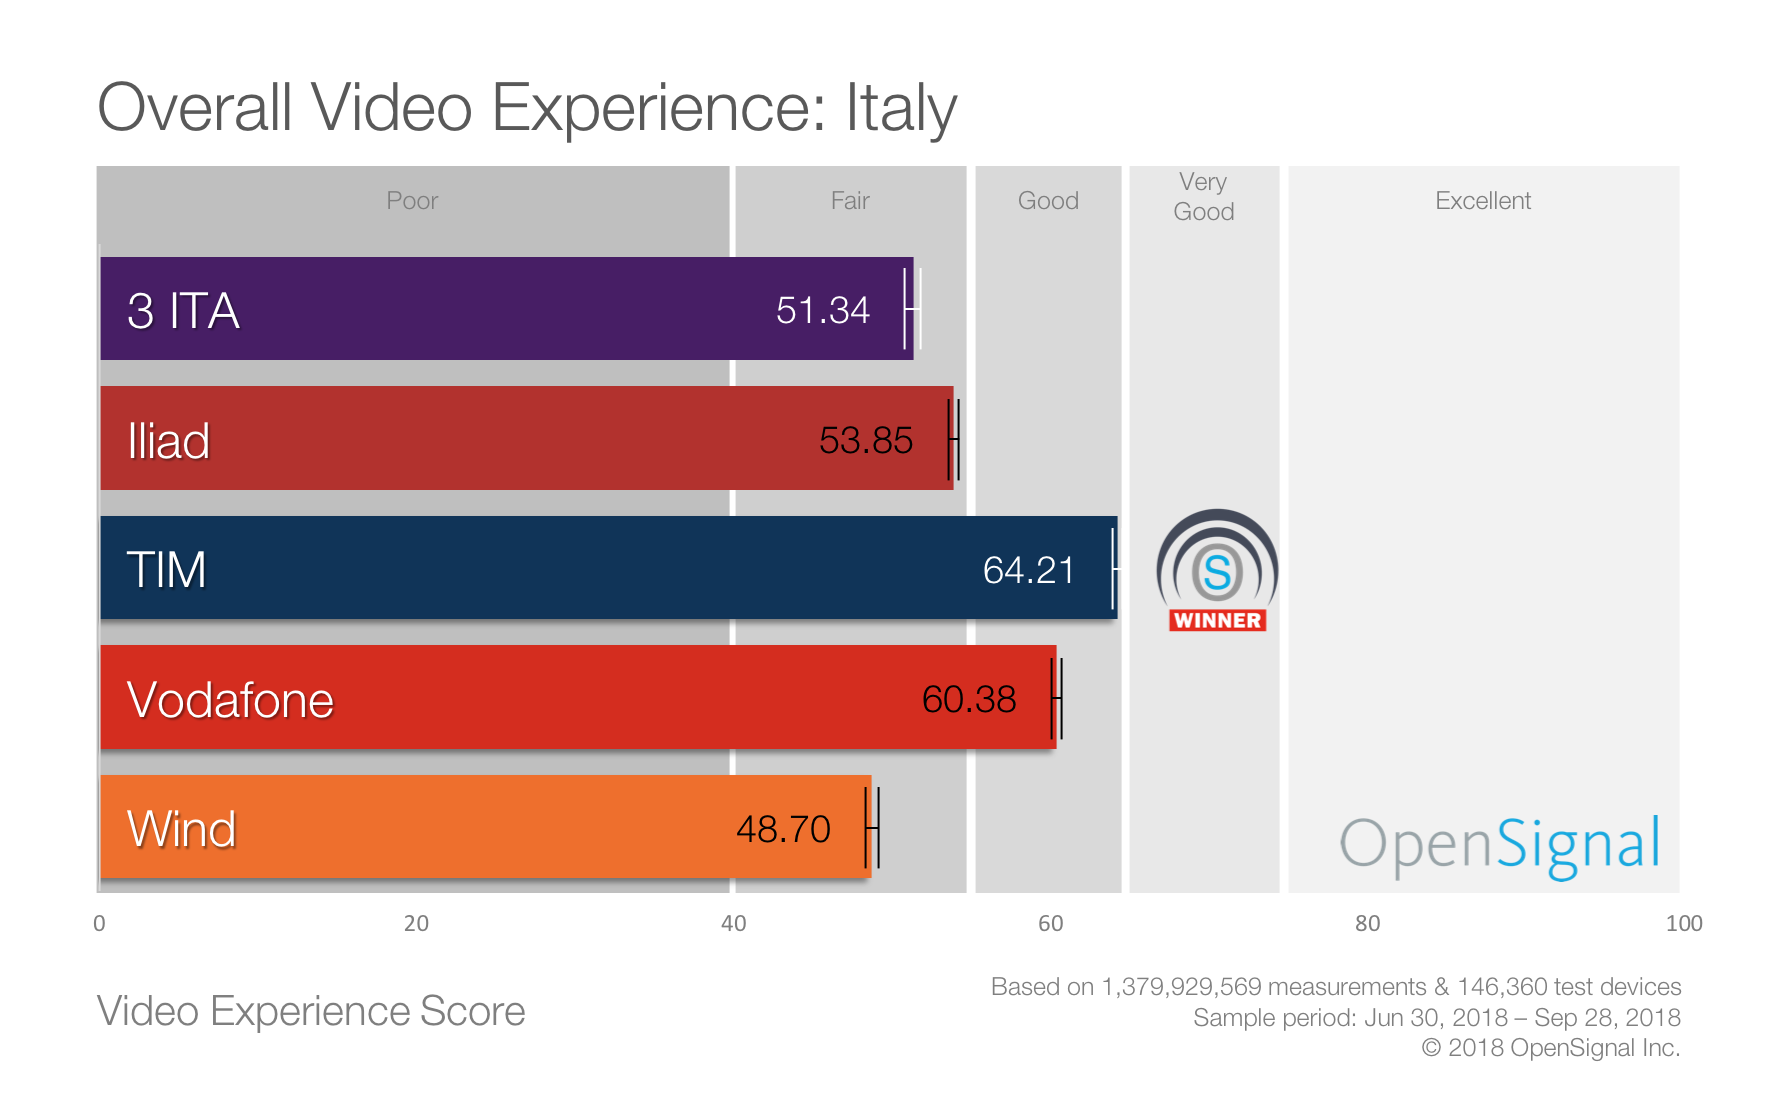 OpenSignal_Overall Video Experience Italy